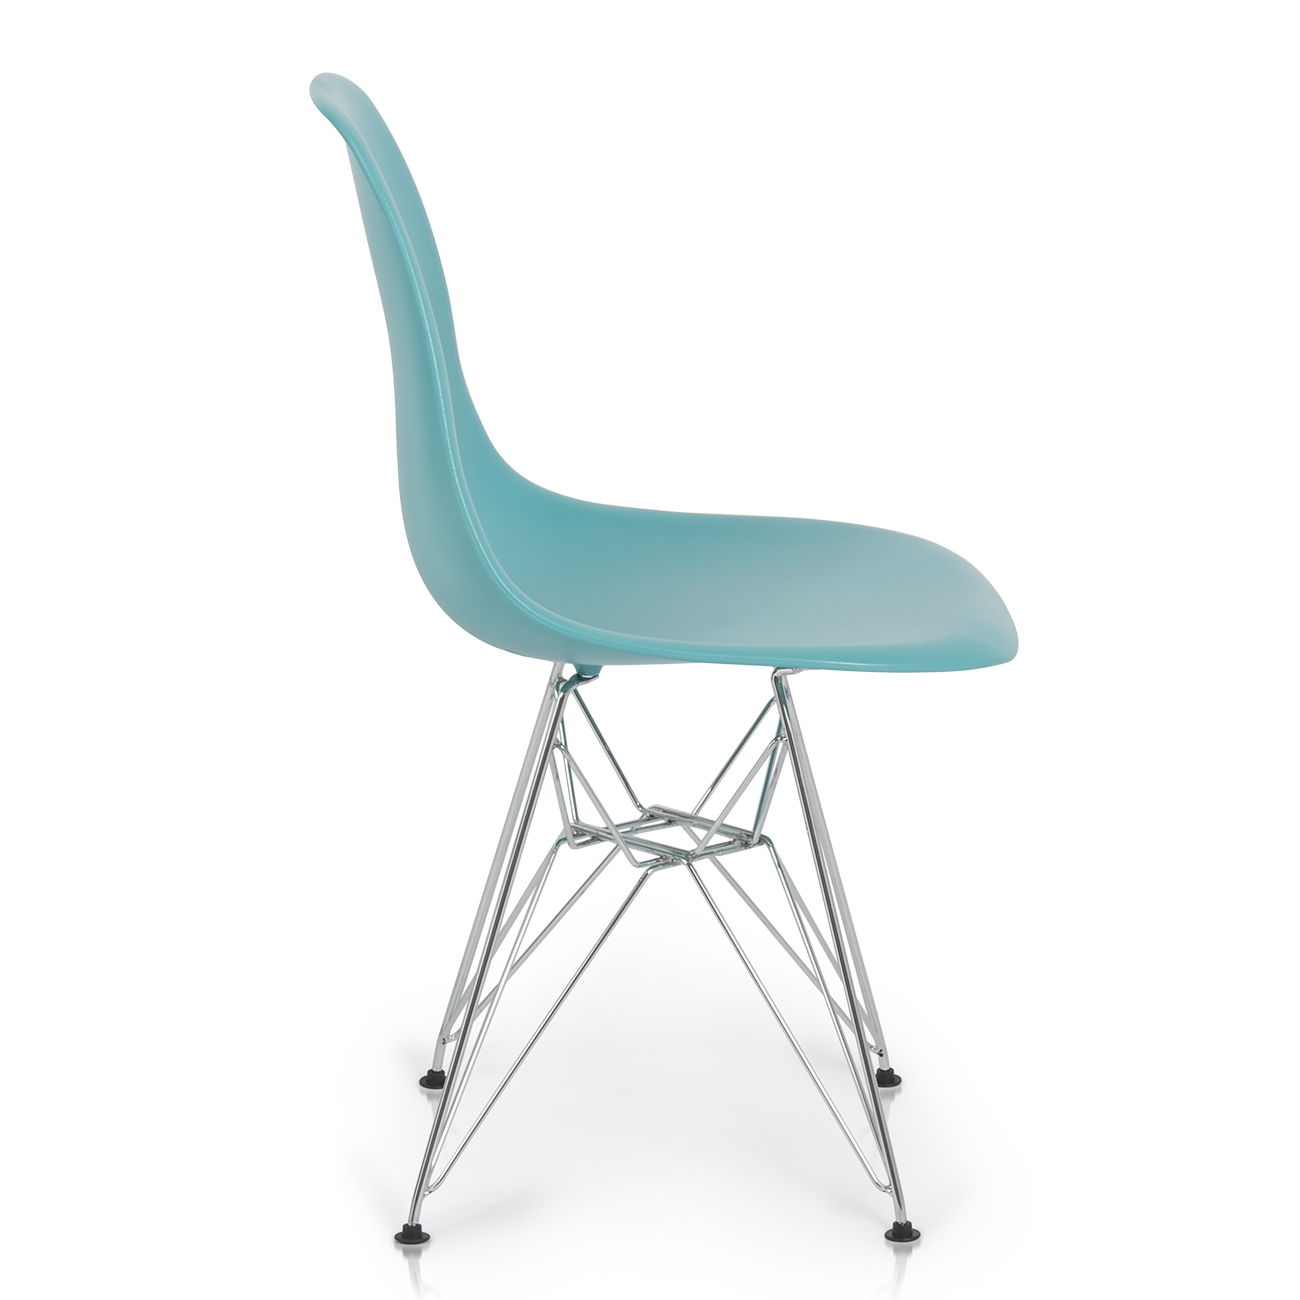 Premium Blue Eames DSW Molded Plastic Eiffel Retro Dining Side Chairs Set Of